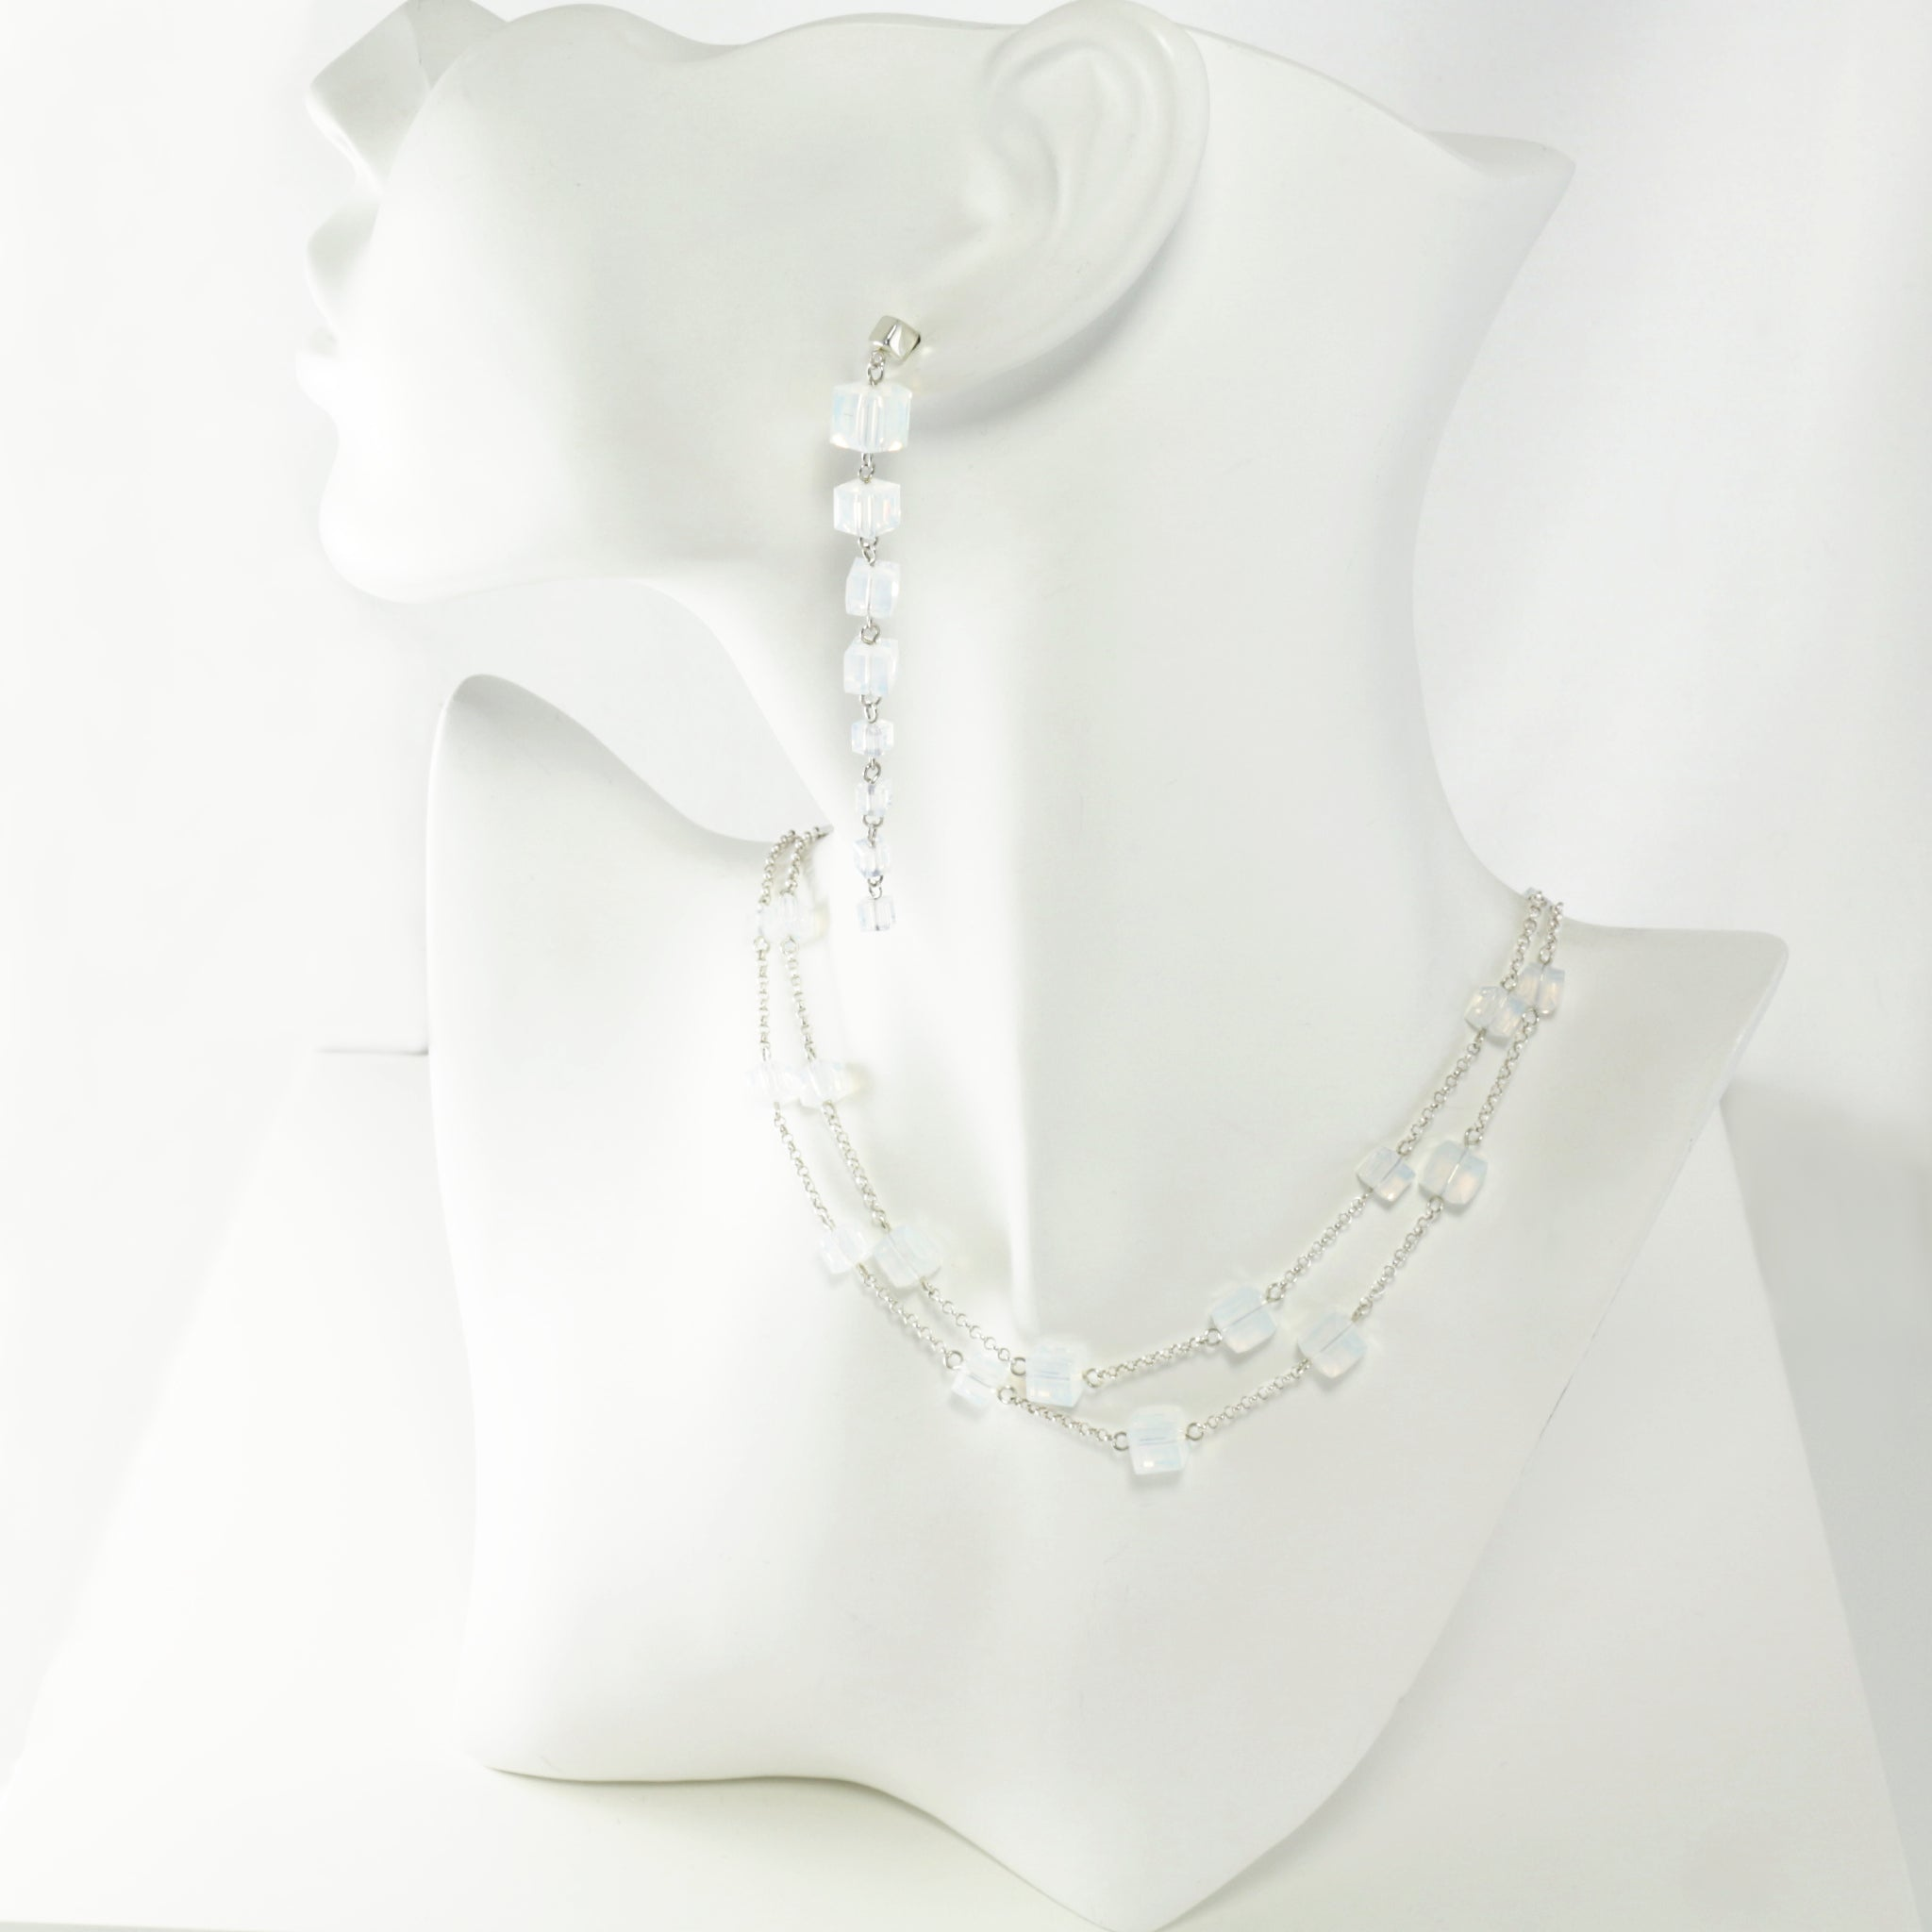 Windows Change-ABLE Necklace in White Opal